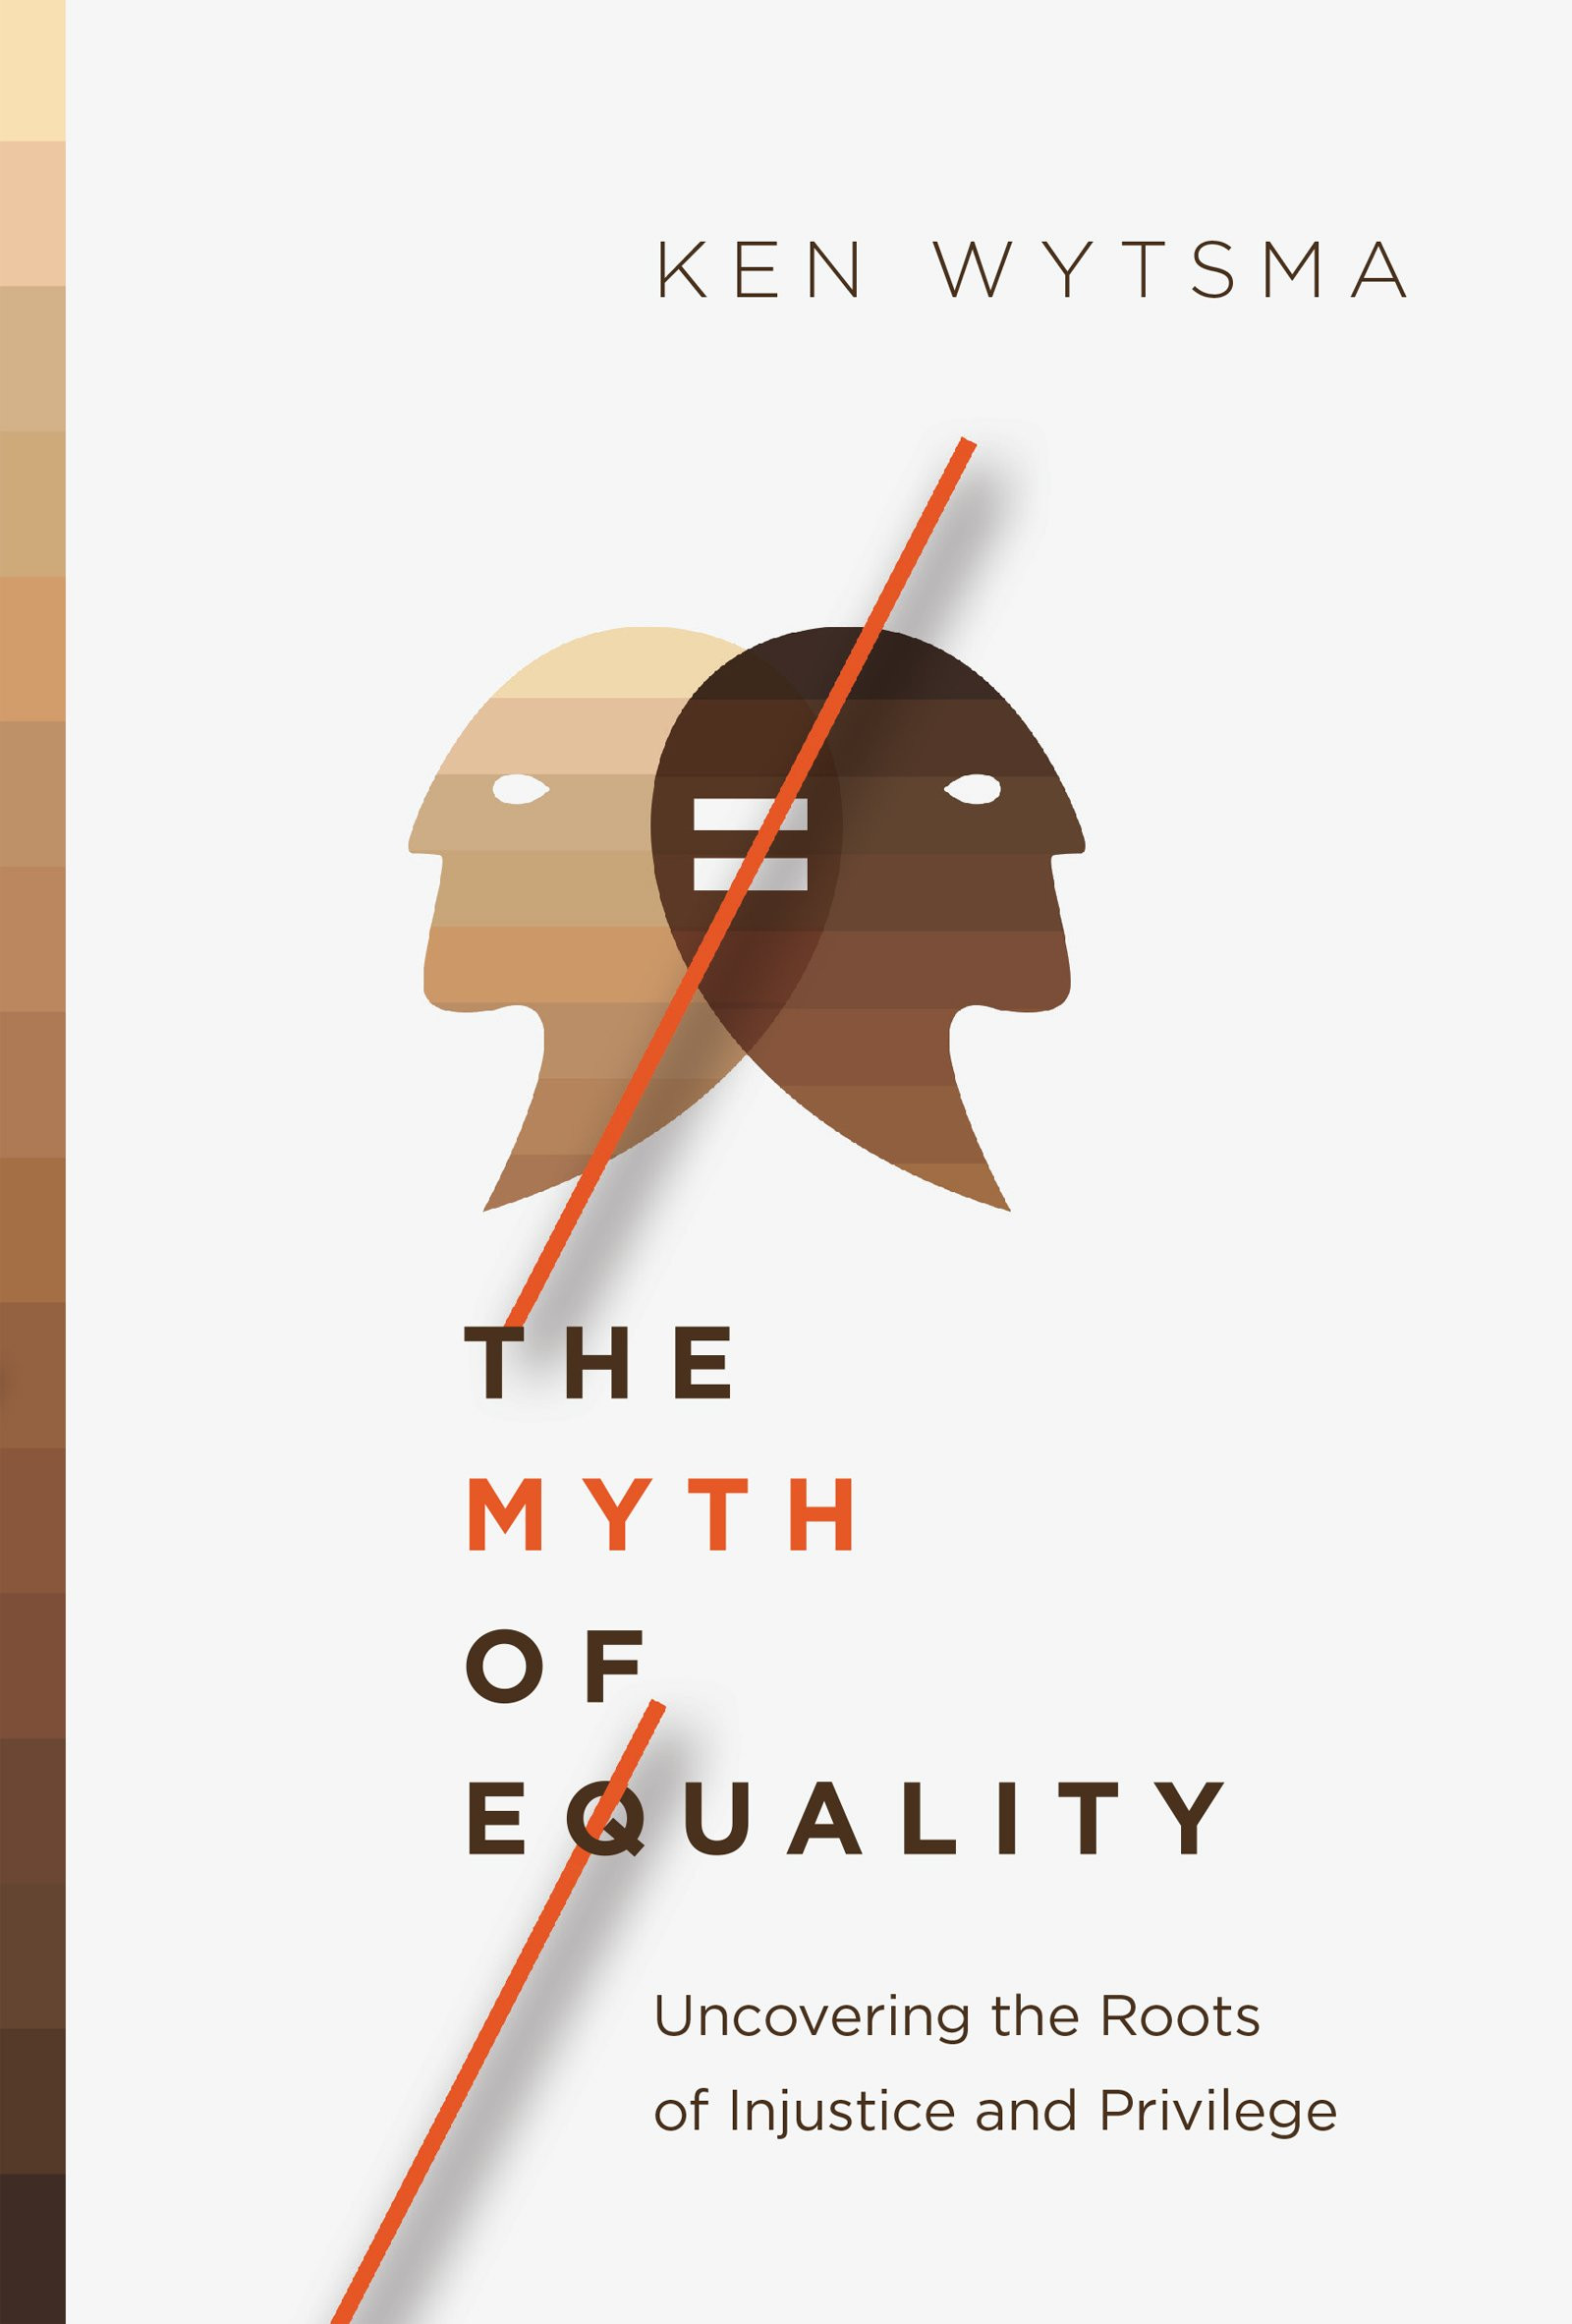 BOOK STUDY: The Myth of Equality - Uncovering the Roots of Injustice and Privilege by Ken Wytsma